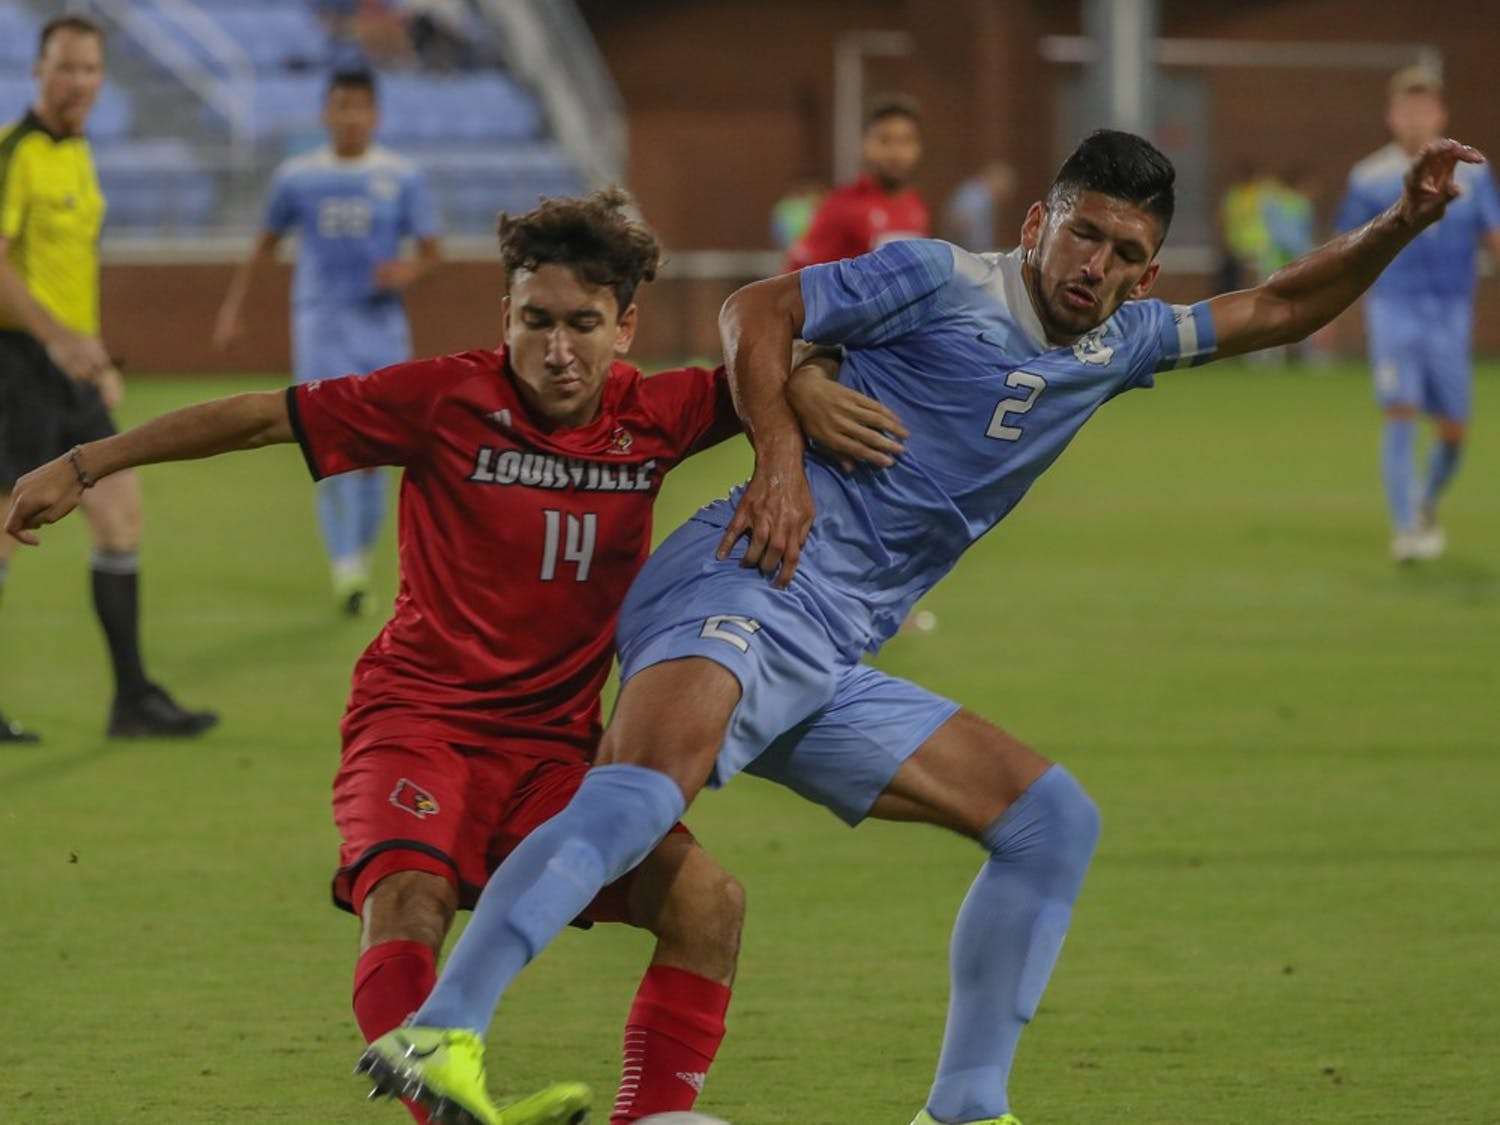 Senior Mauricio Pineda (2) fights for the ball during the game against Louisville on Friday, Oct. 25, 2019. UNC lost to Louisville 0-1.